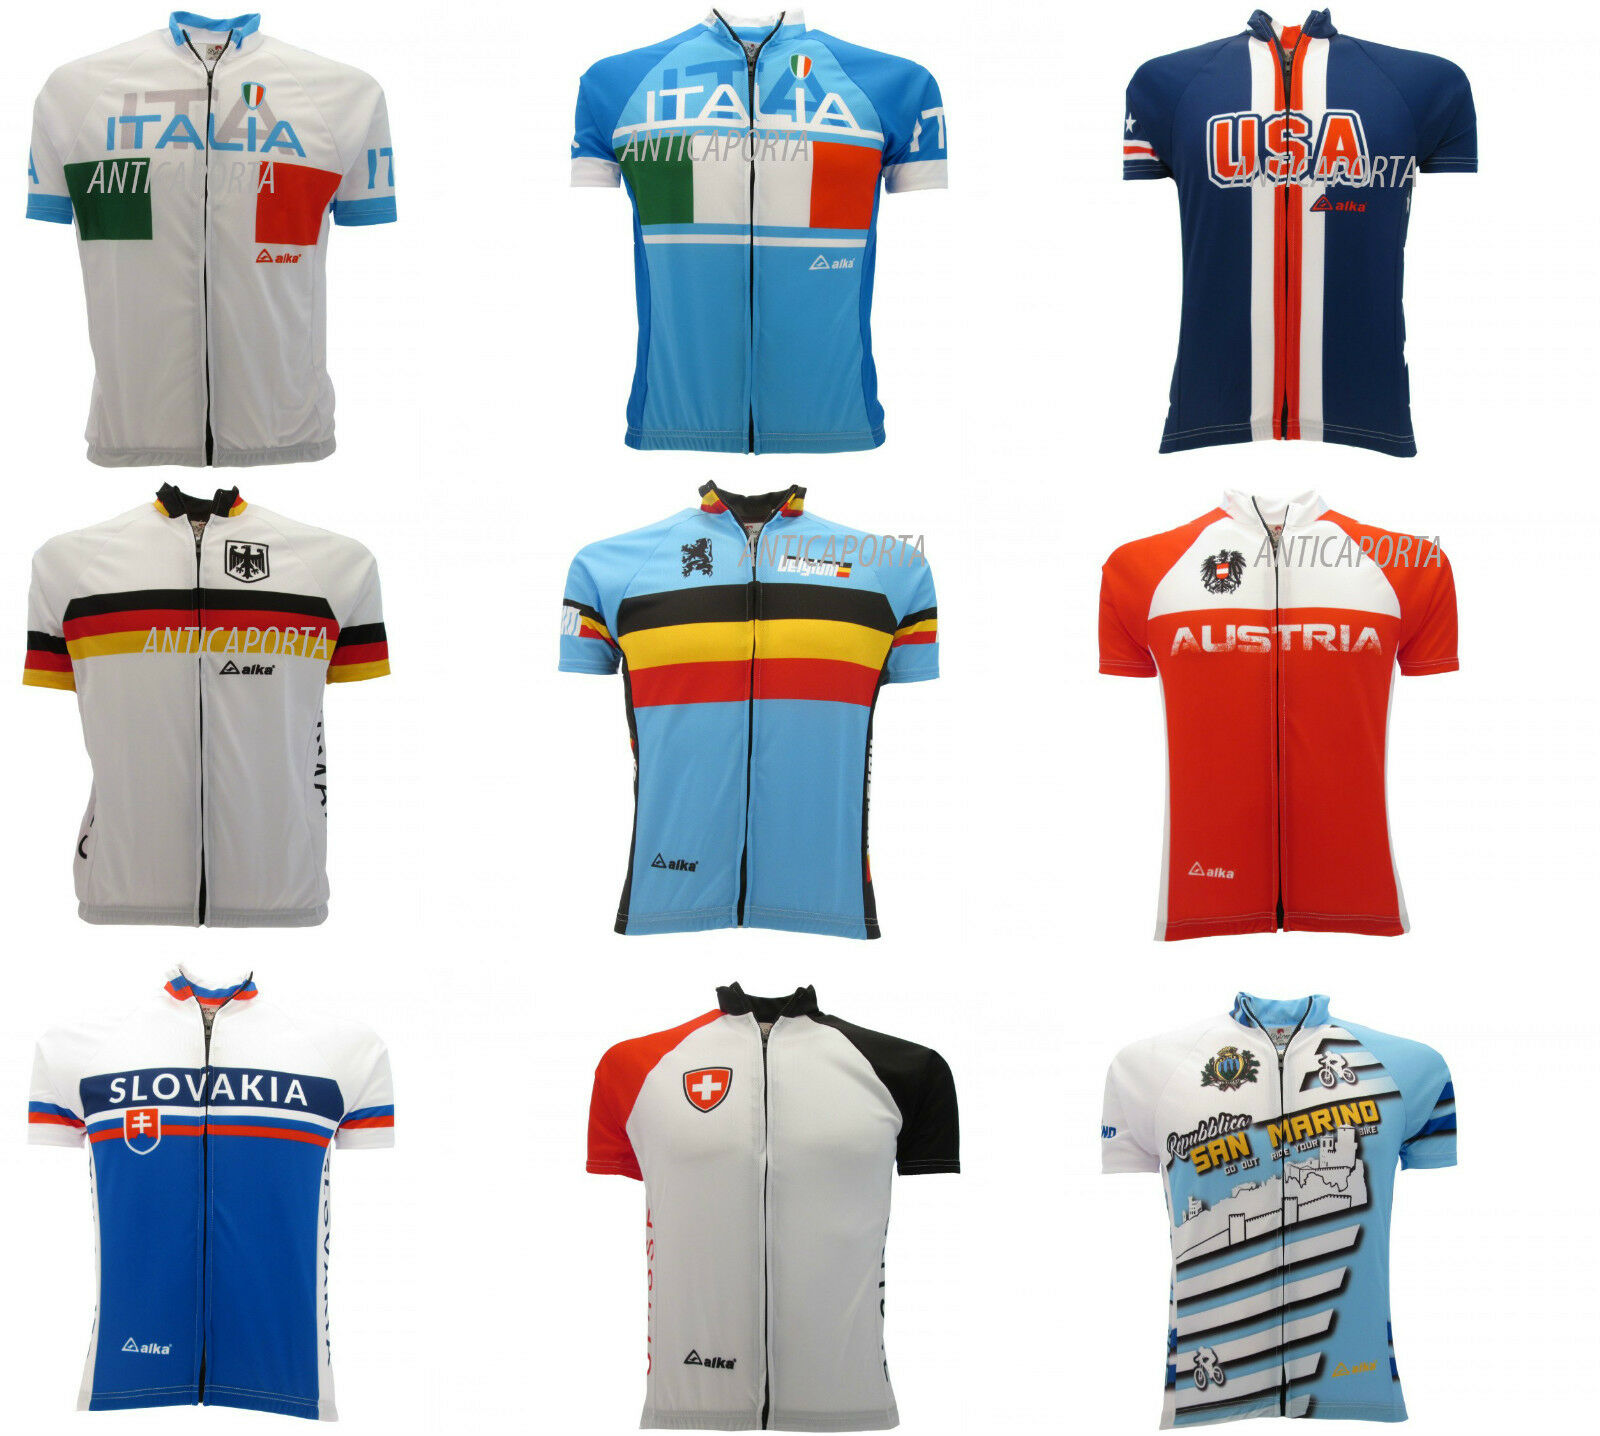 Maillot Skyline Projet Cyclisme National Italie Allemagne Autriche USA